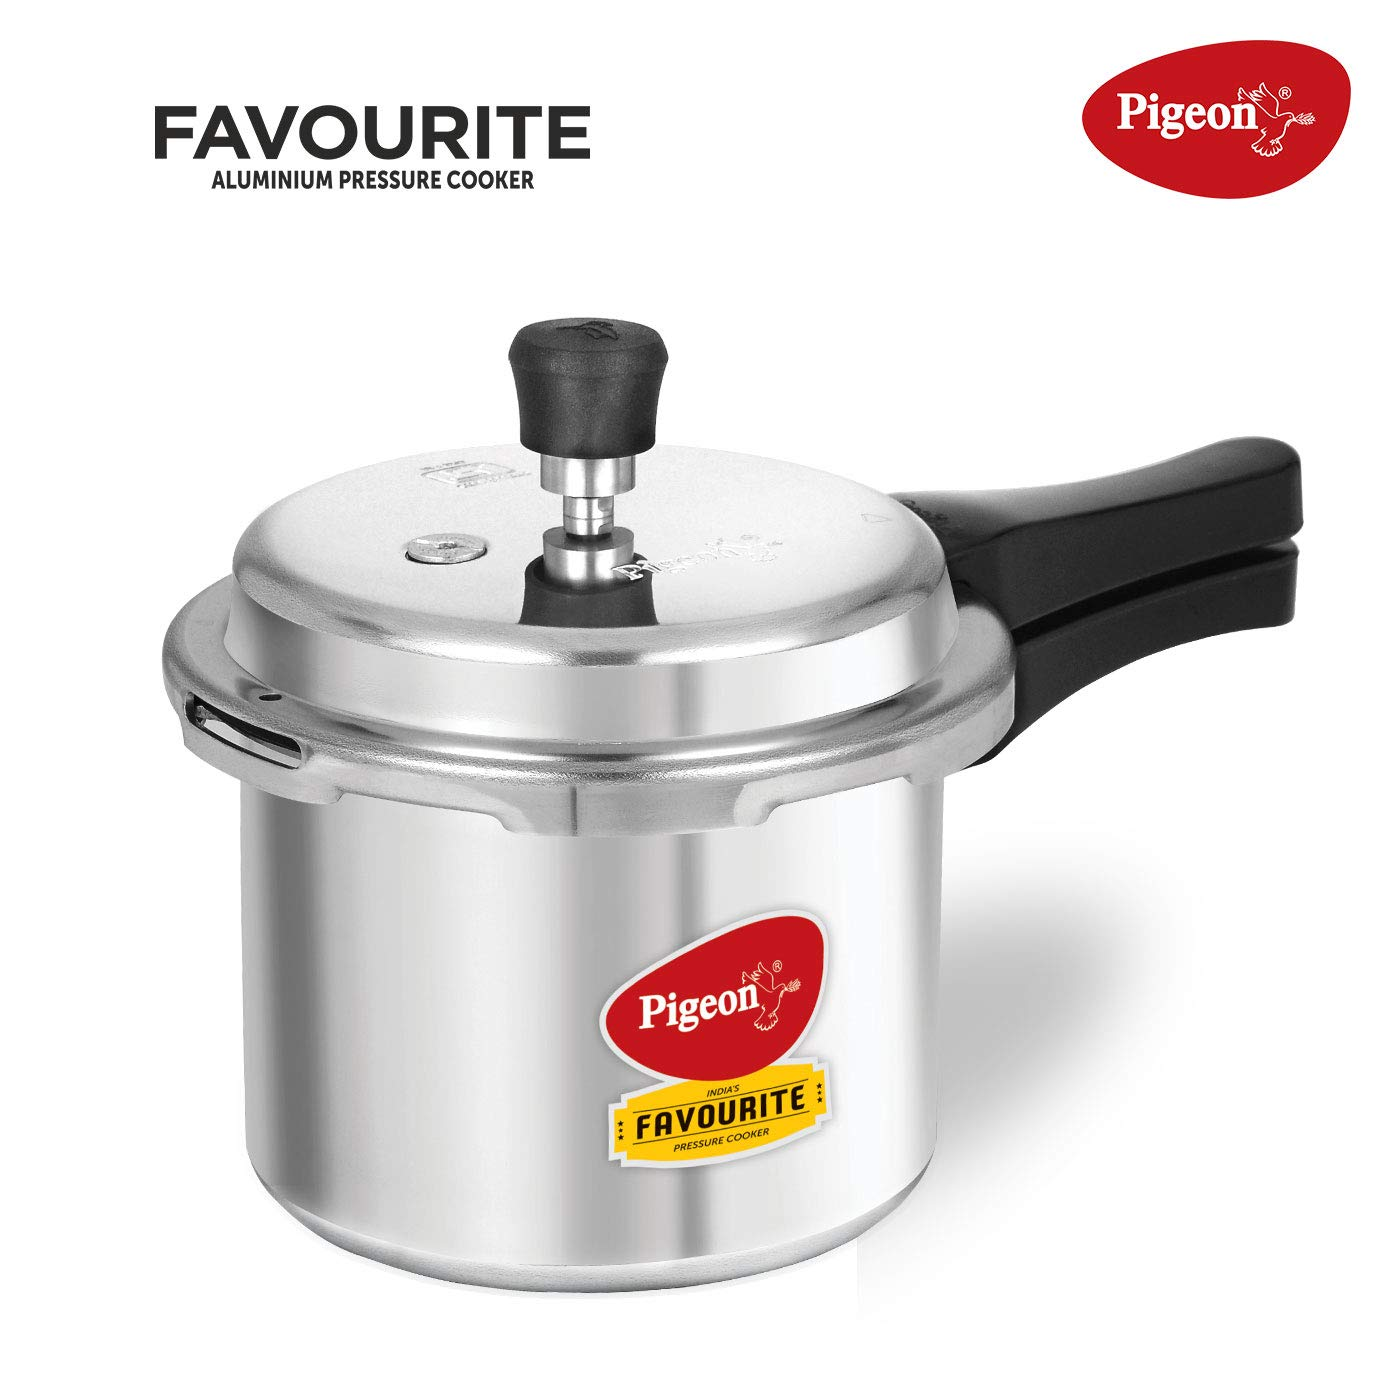 Pigeon Favorite Outer Lid Non-Induction Aluminum Pressure Cooker